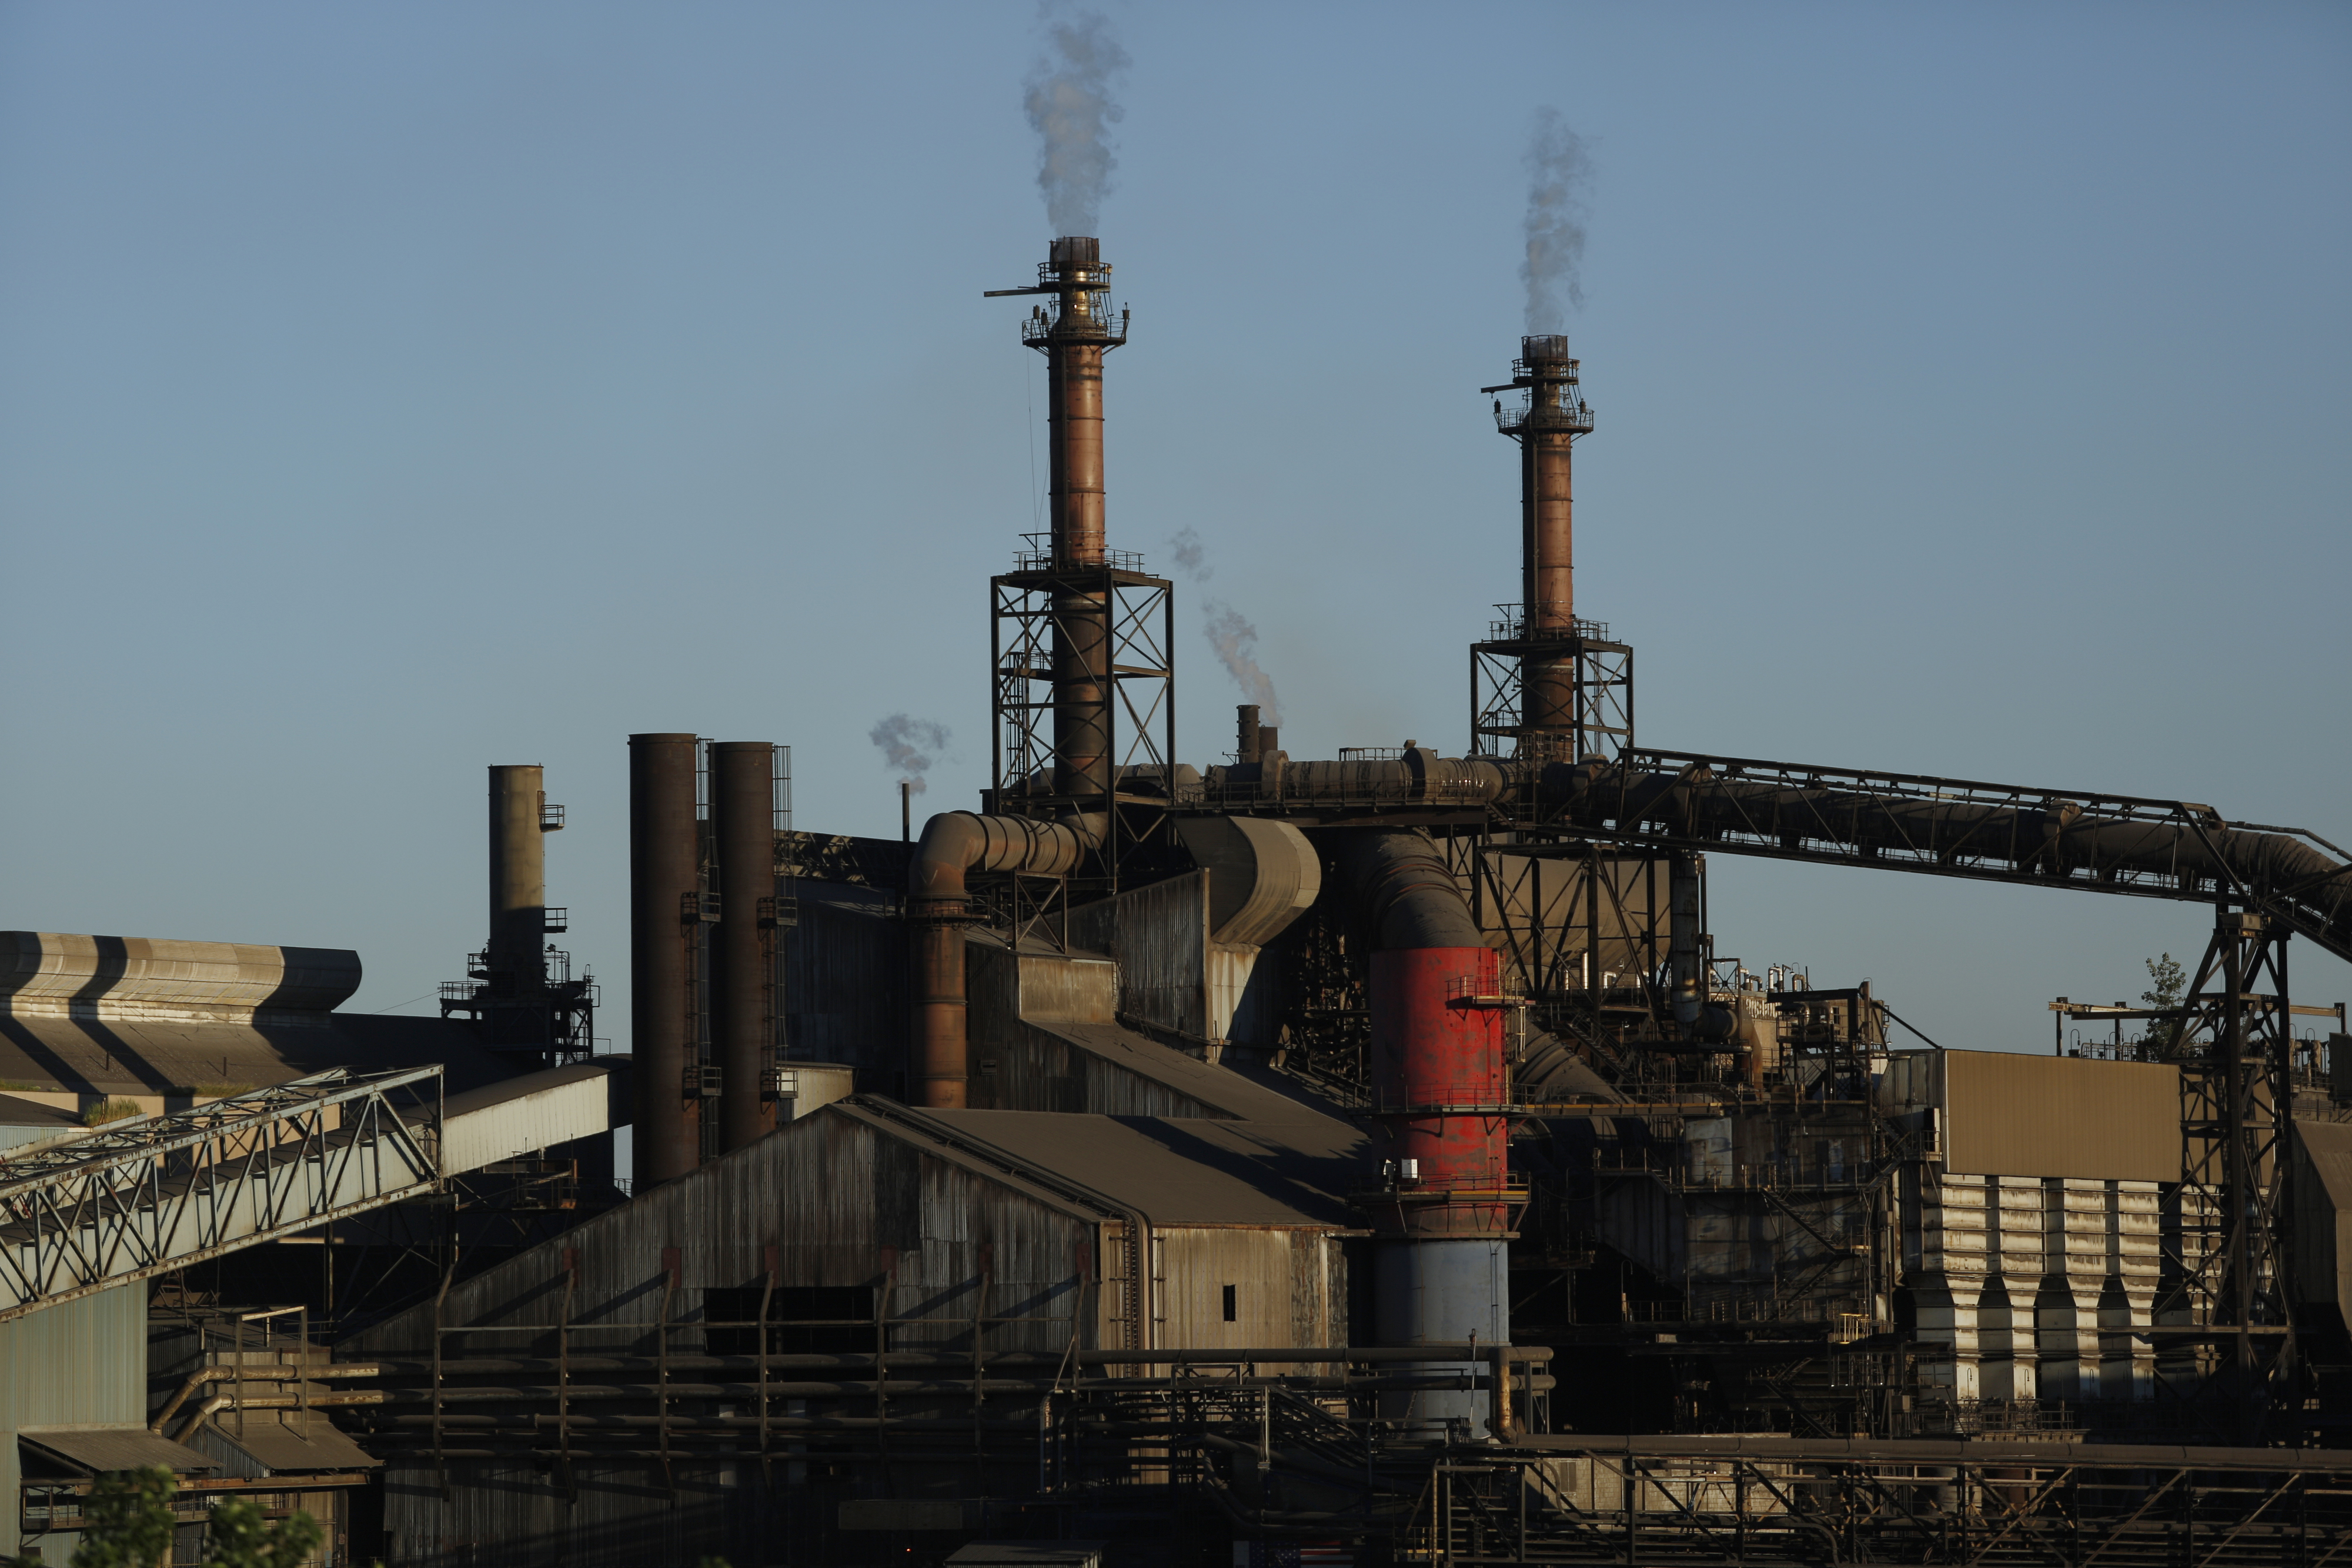 Views Of The ArcelorMittal Steel Mill As More Steel Pain Coming To The U.S.